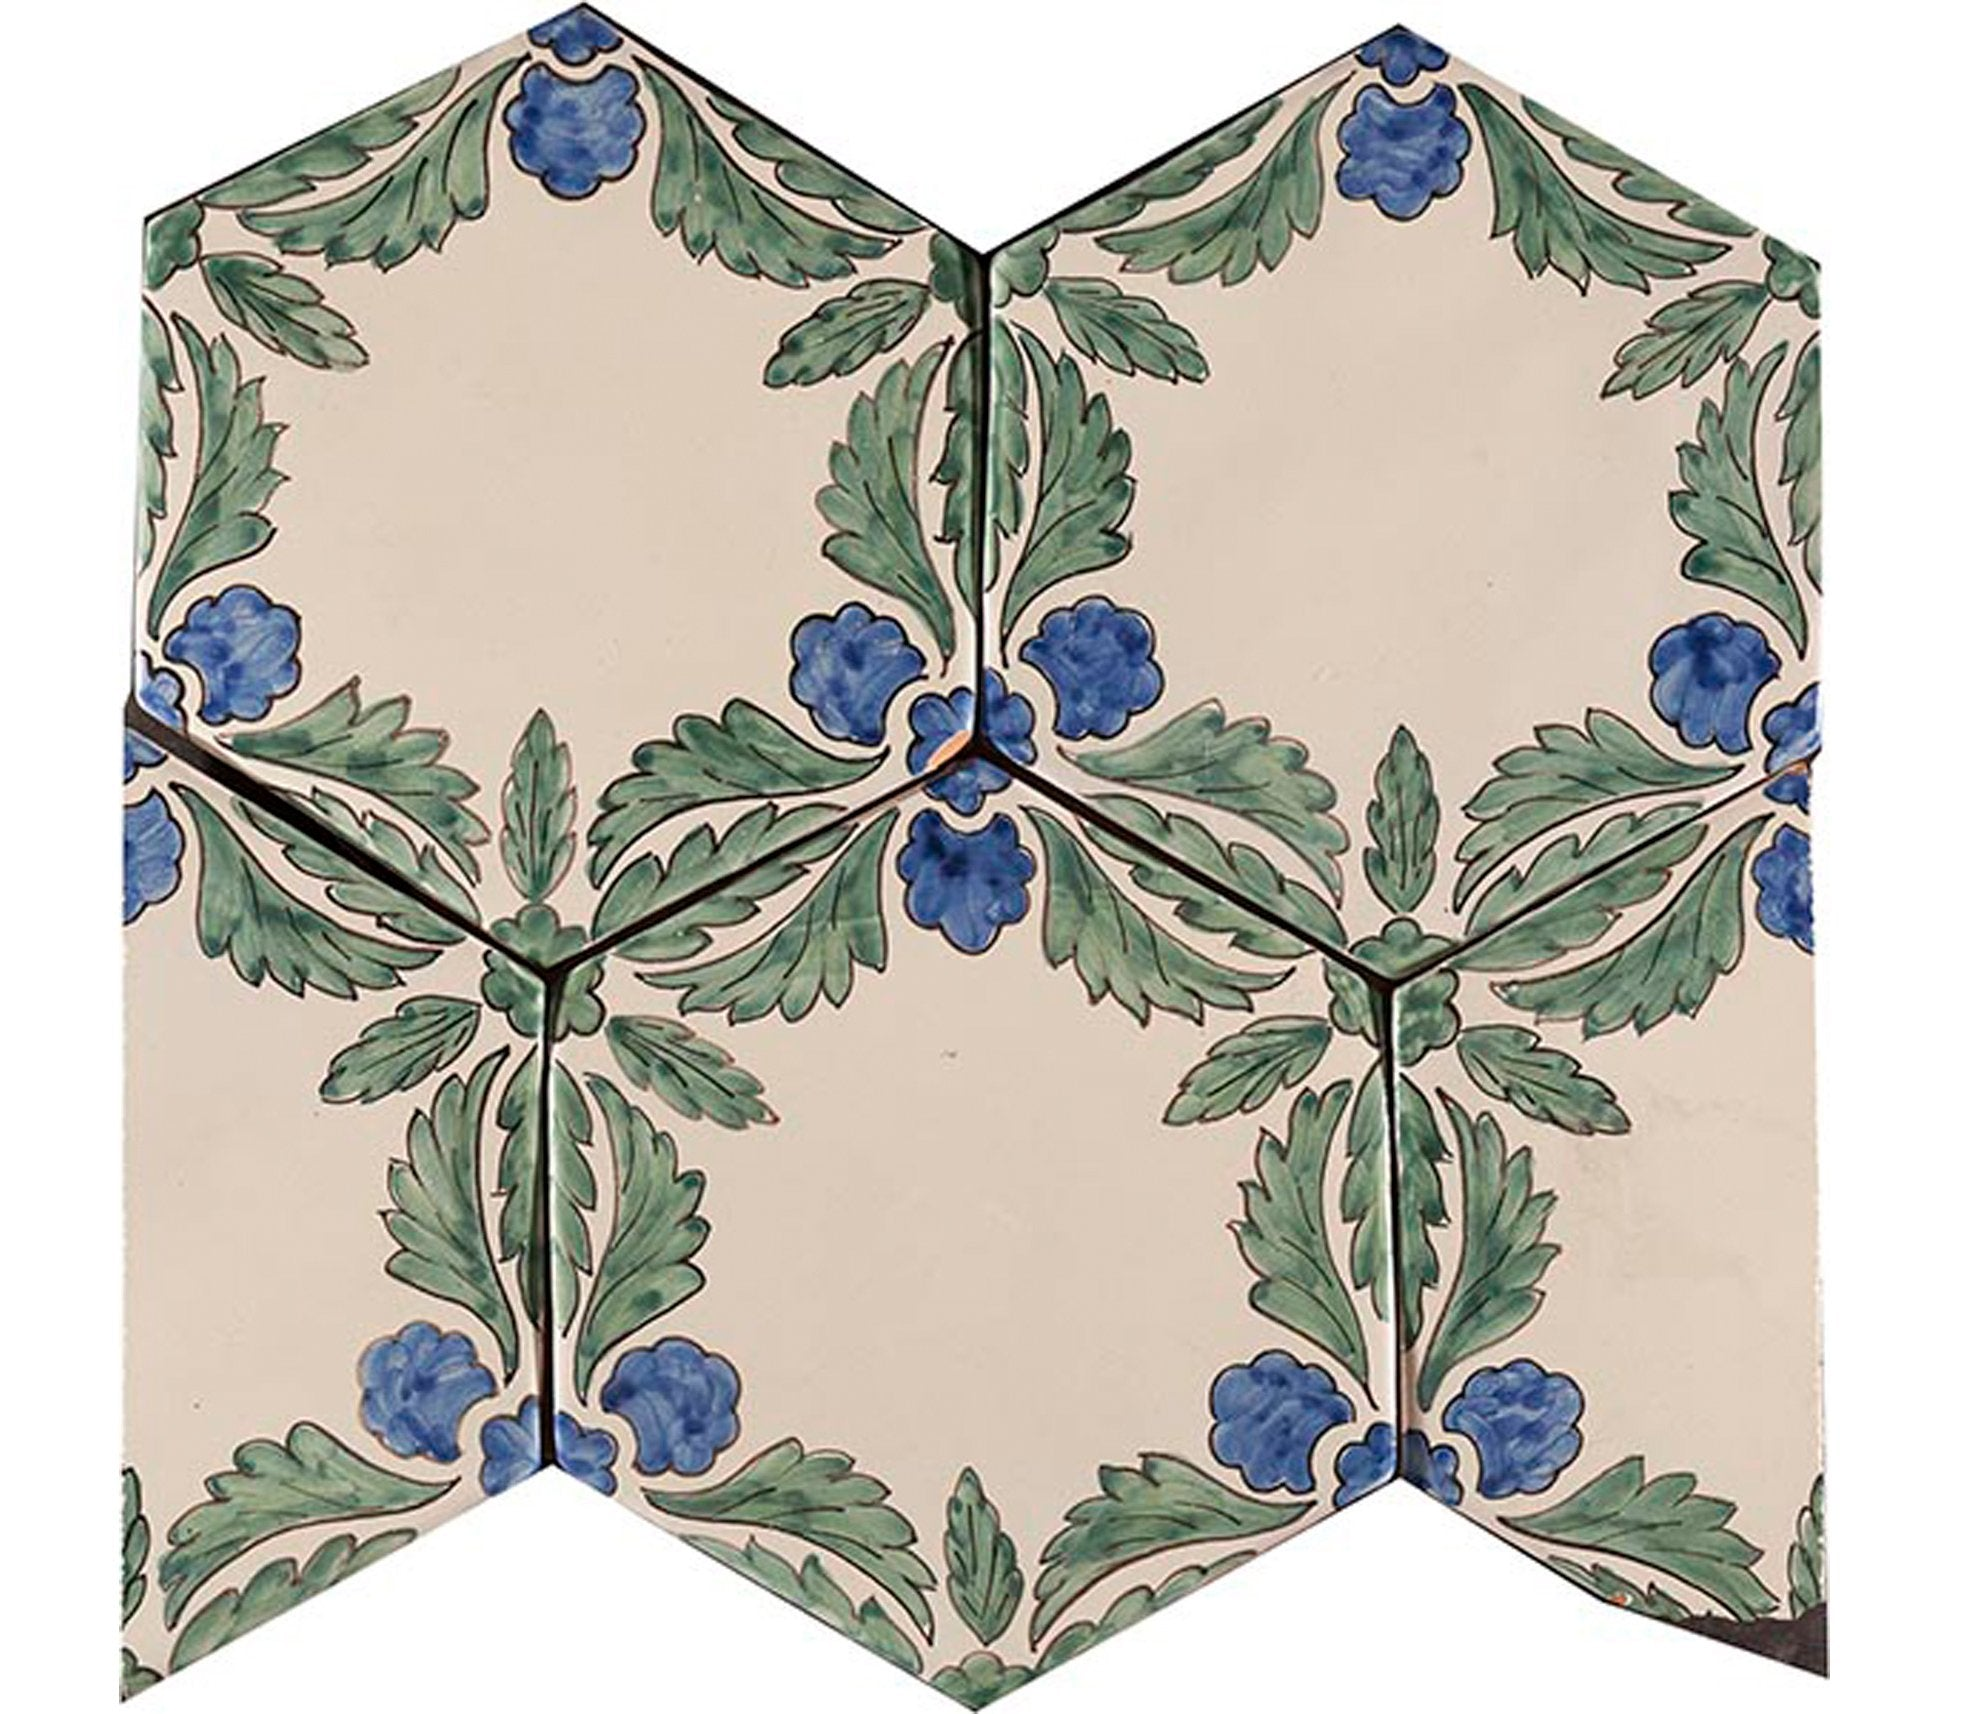 Series S Handpainted Tiles Product Image 9